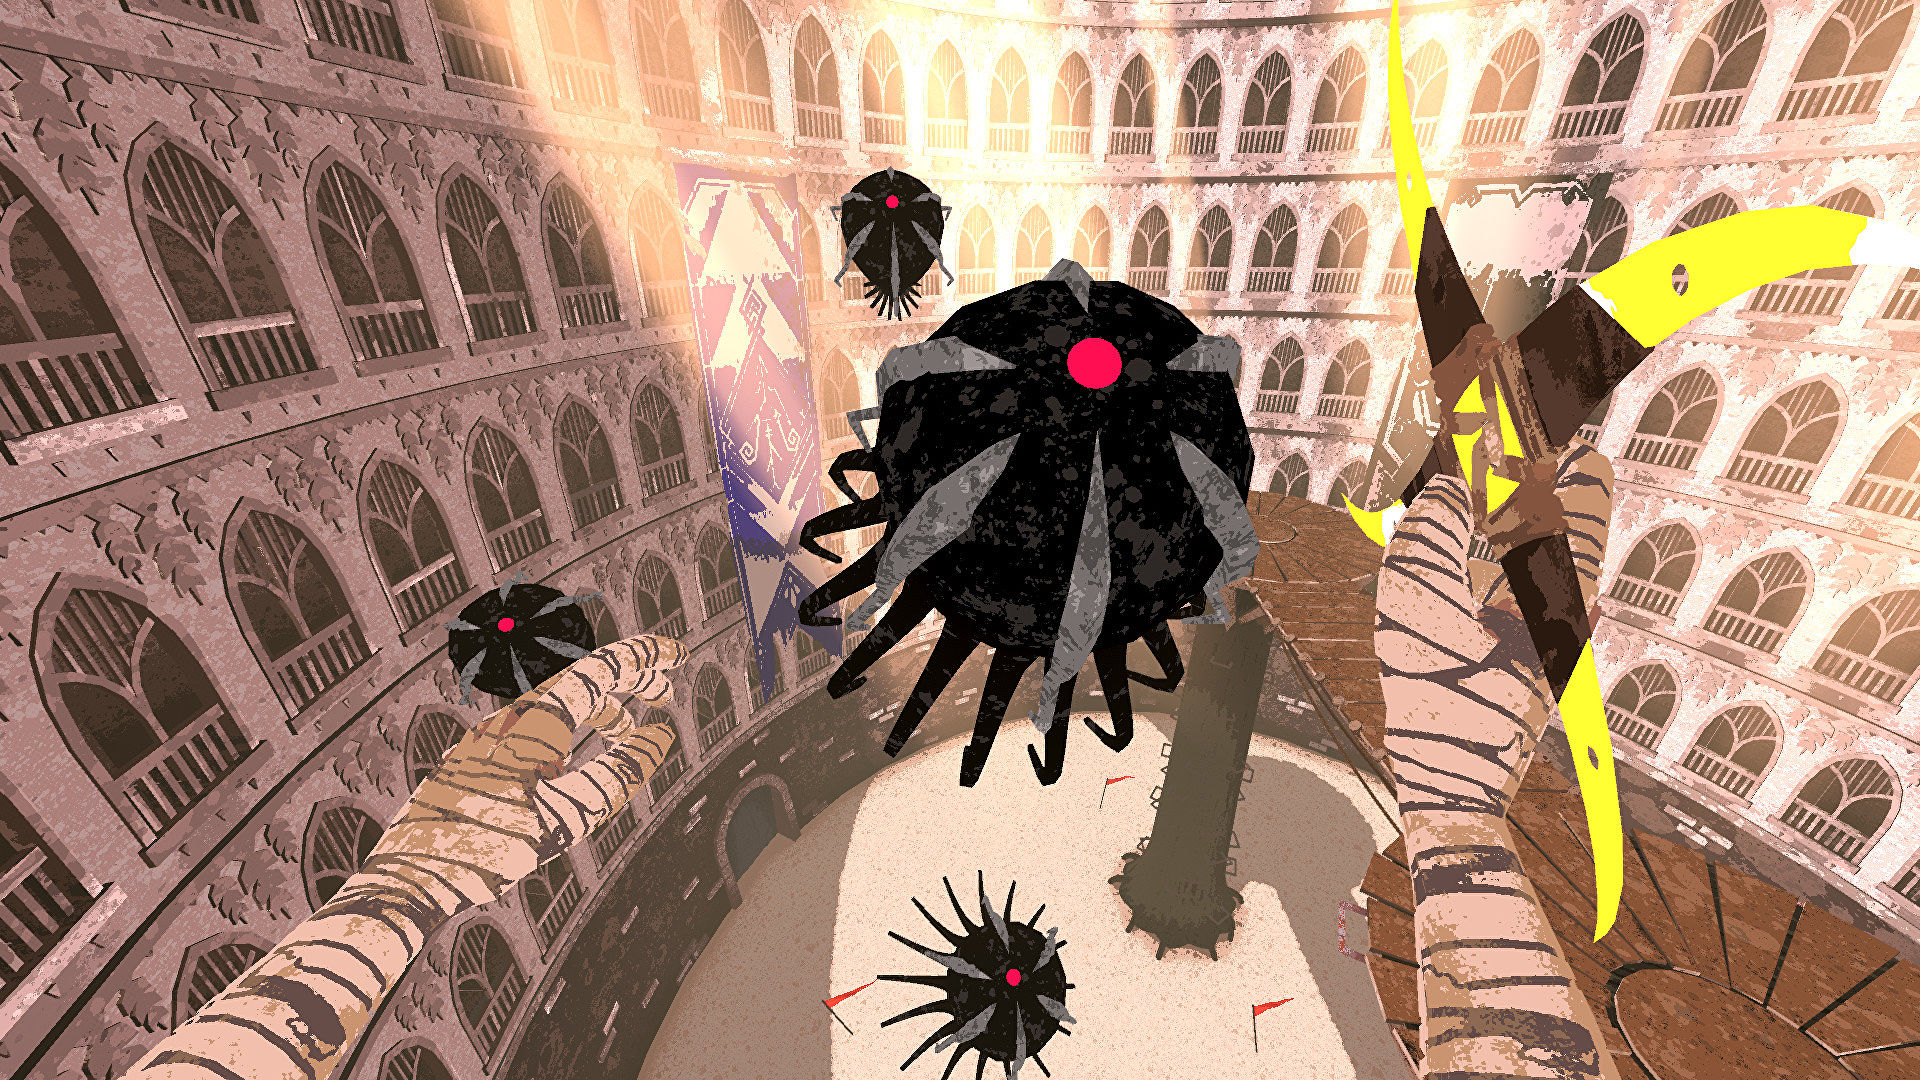 Boomerang X's demo offers Devil Daggers-style delights with a sense of progress